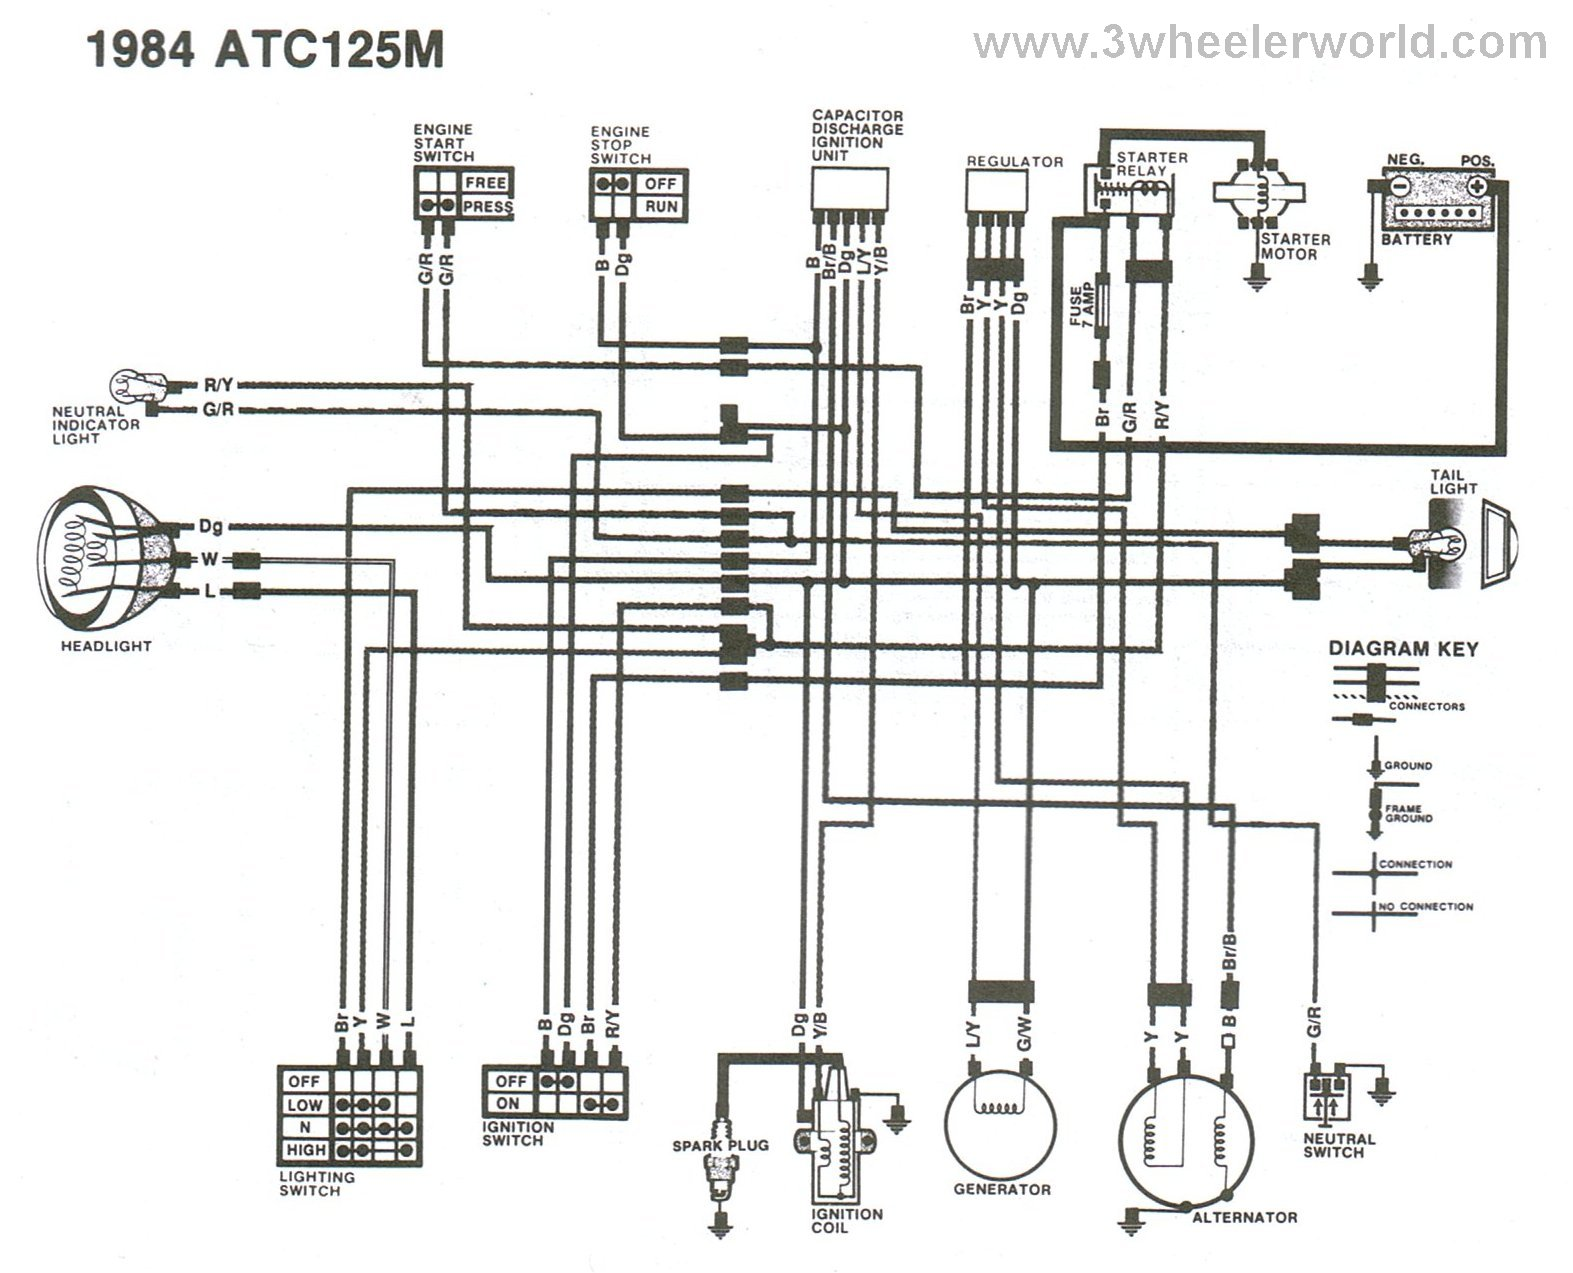 3wheeler World Honda Atc Wiring Diagrams Civic Article Preview